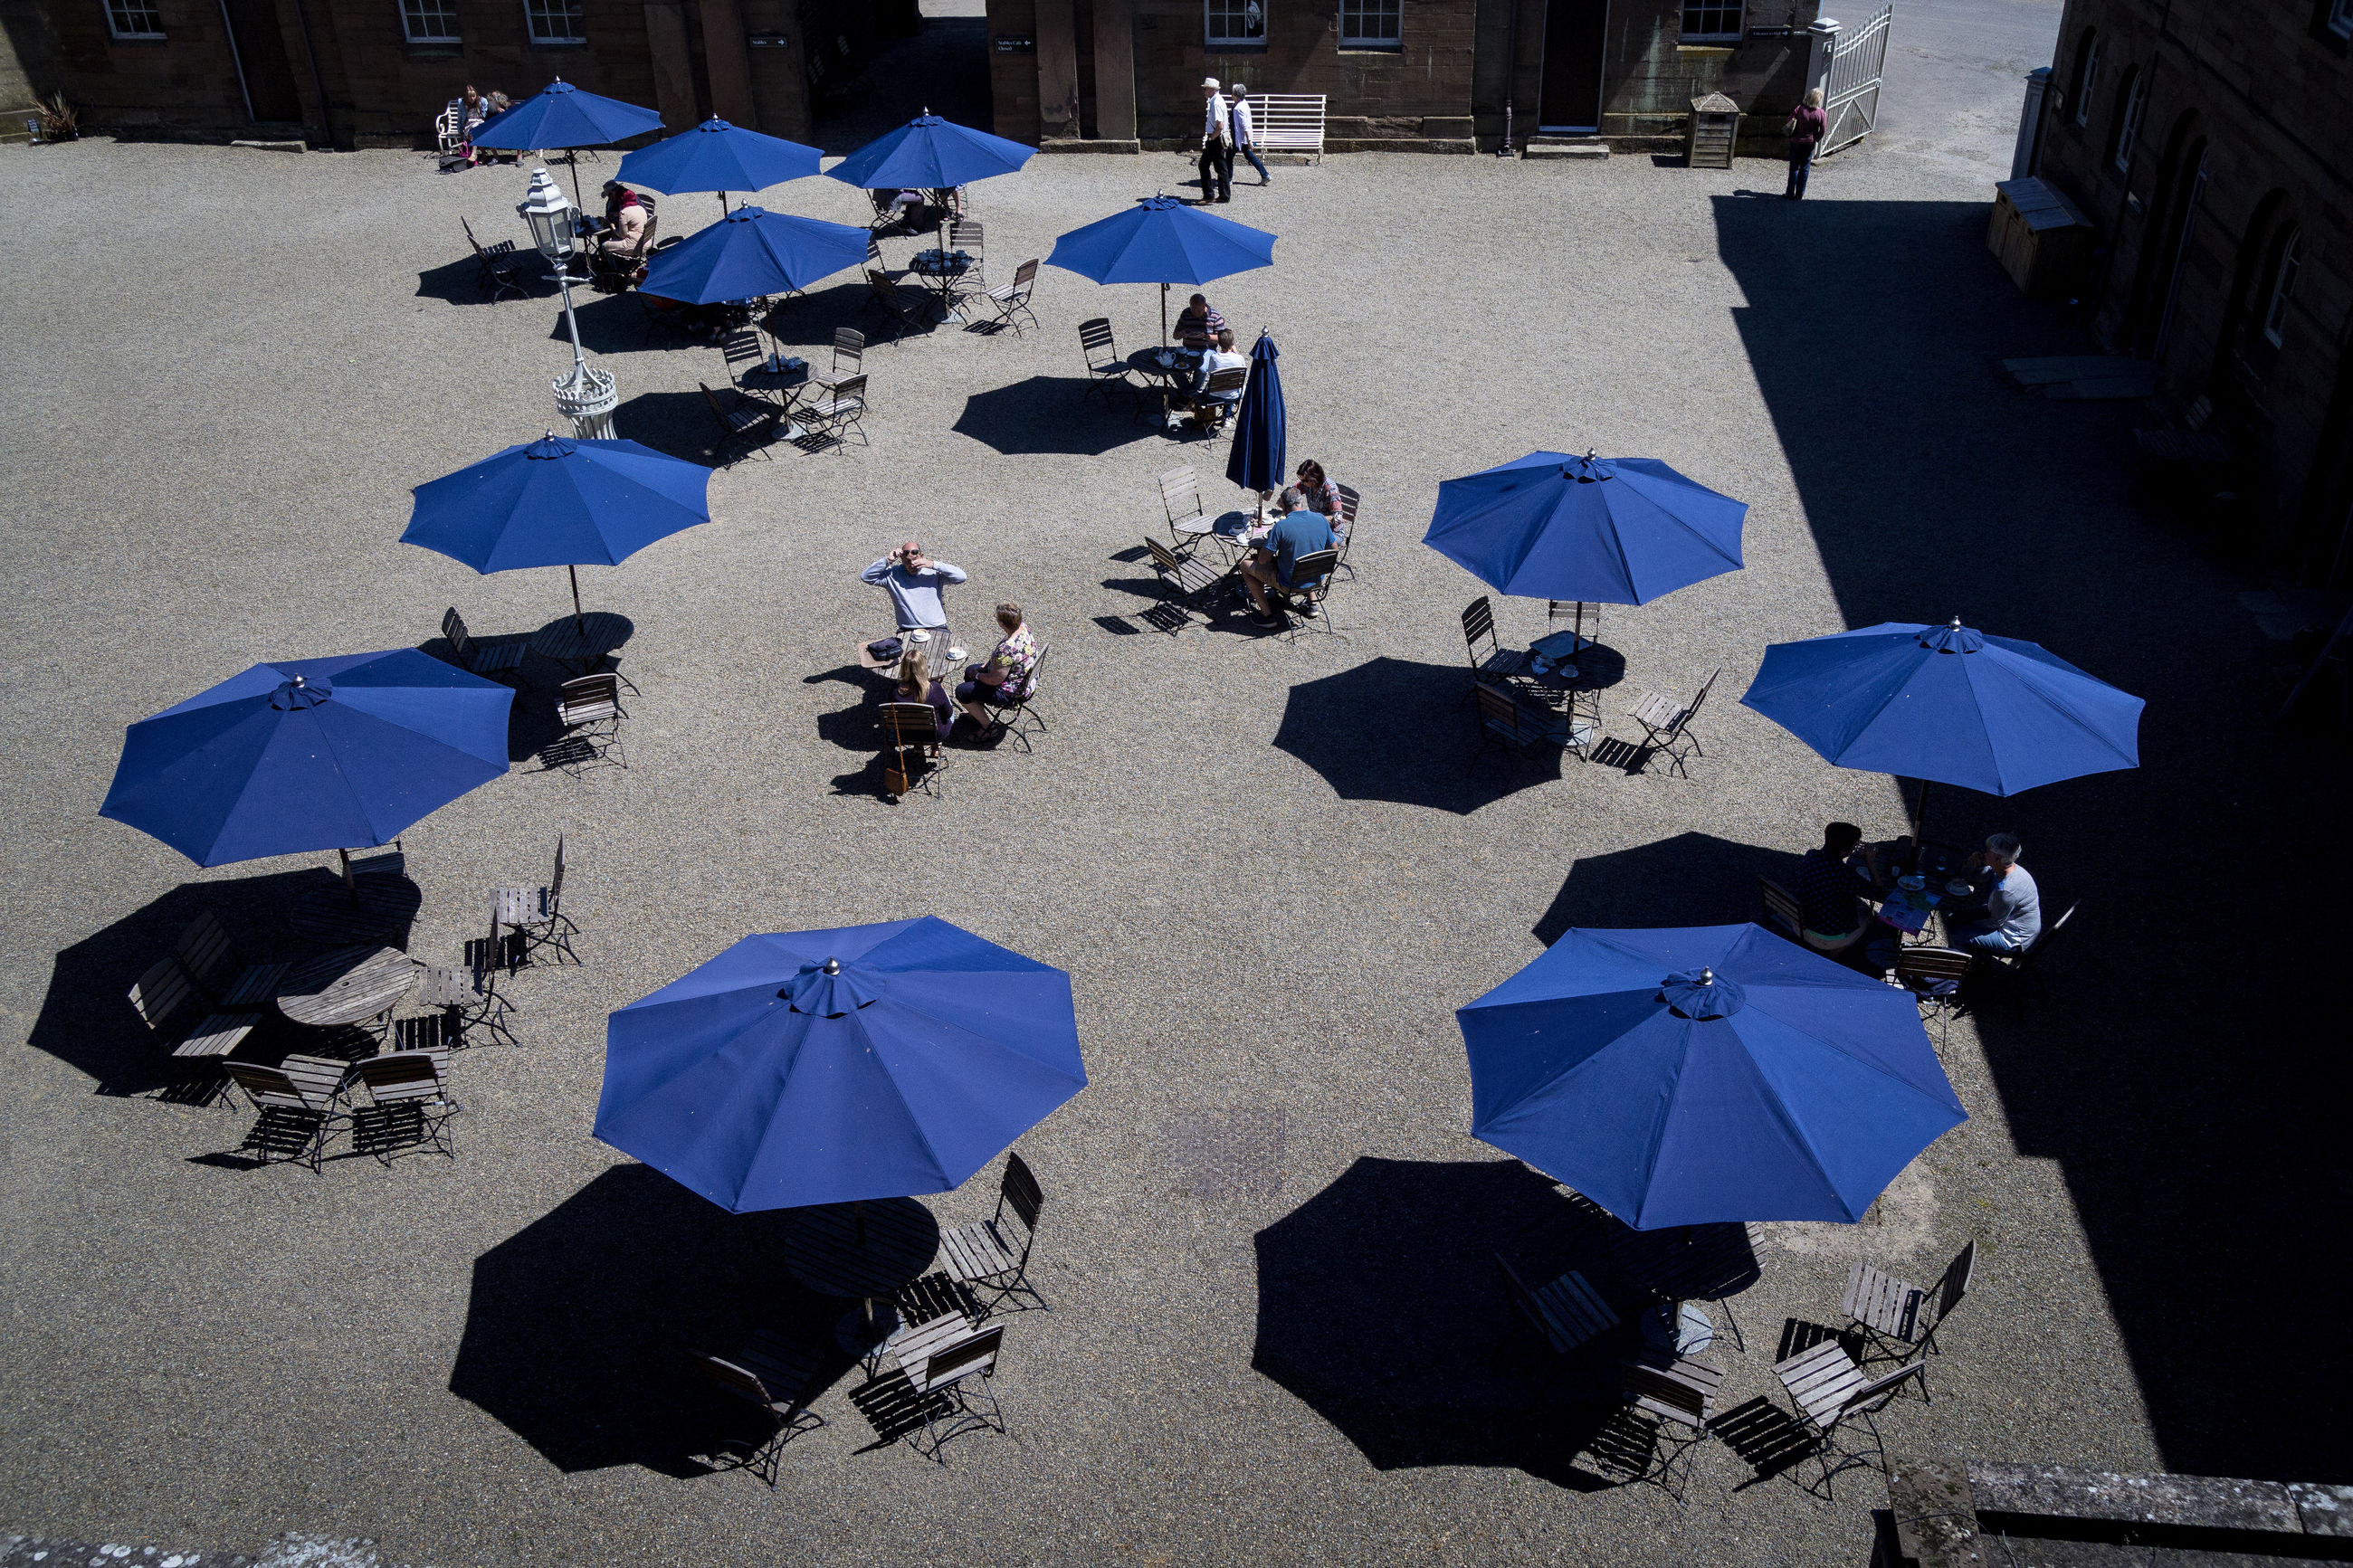 umbrella, protection, high angle view, group of people, parasol, security, crowd, real people, blue, city, nature, large group of people, sunlight, street, day, outdoors, shadow, chair, relaxation, rain